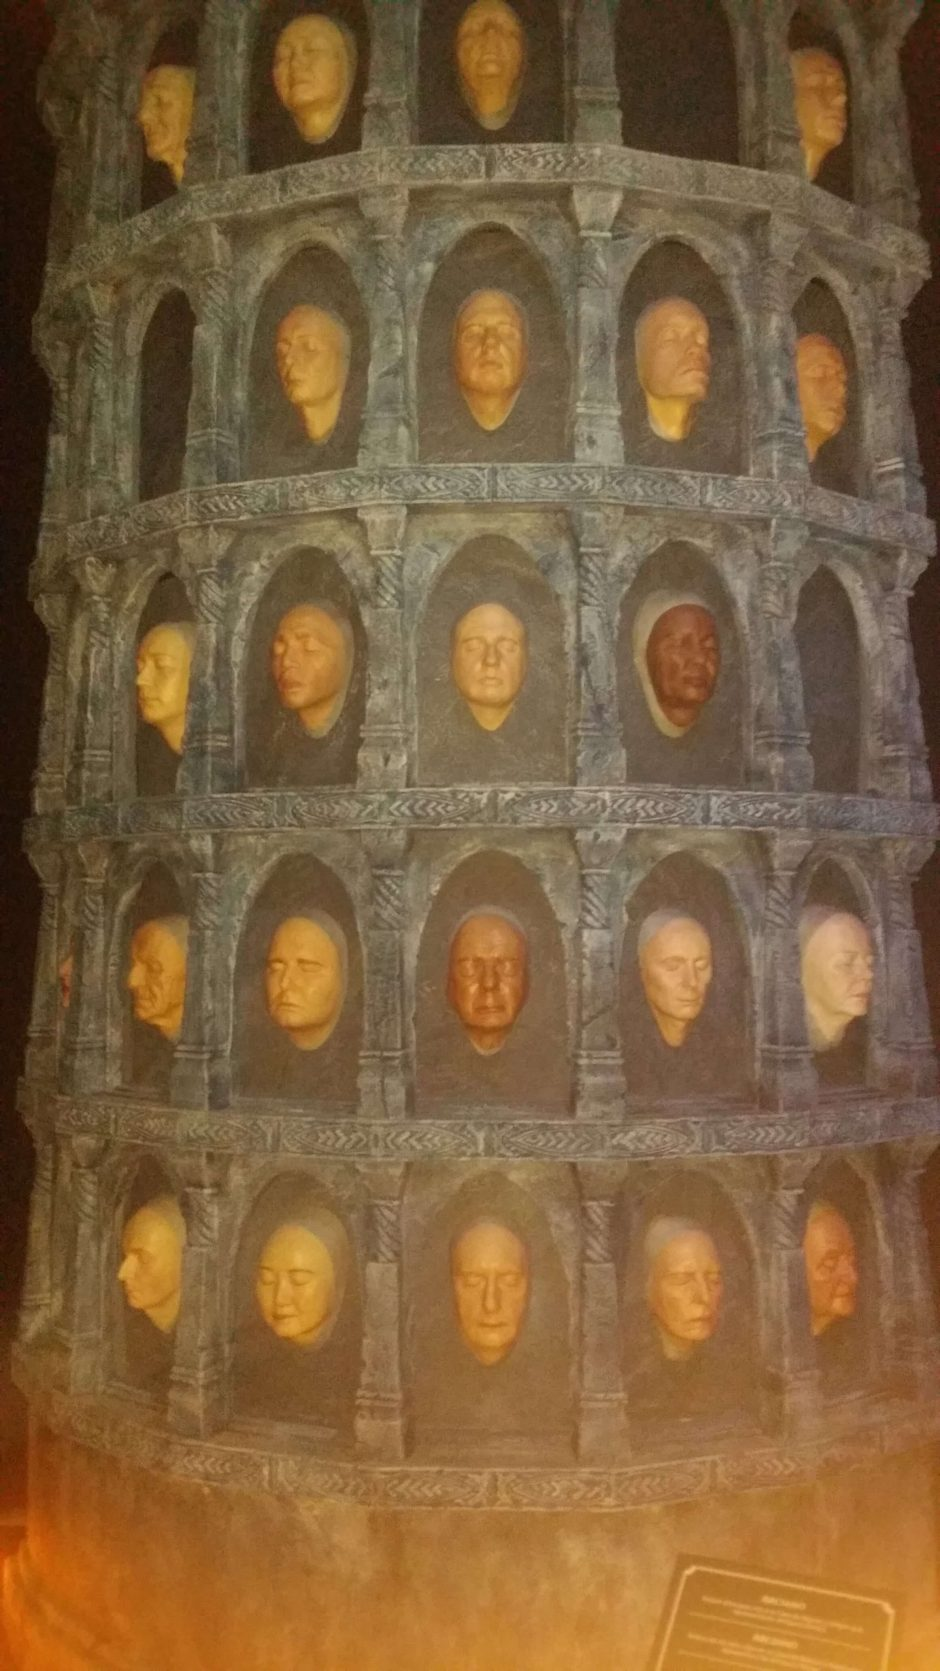 Hall of Faces